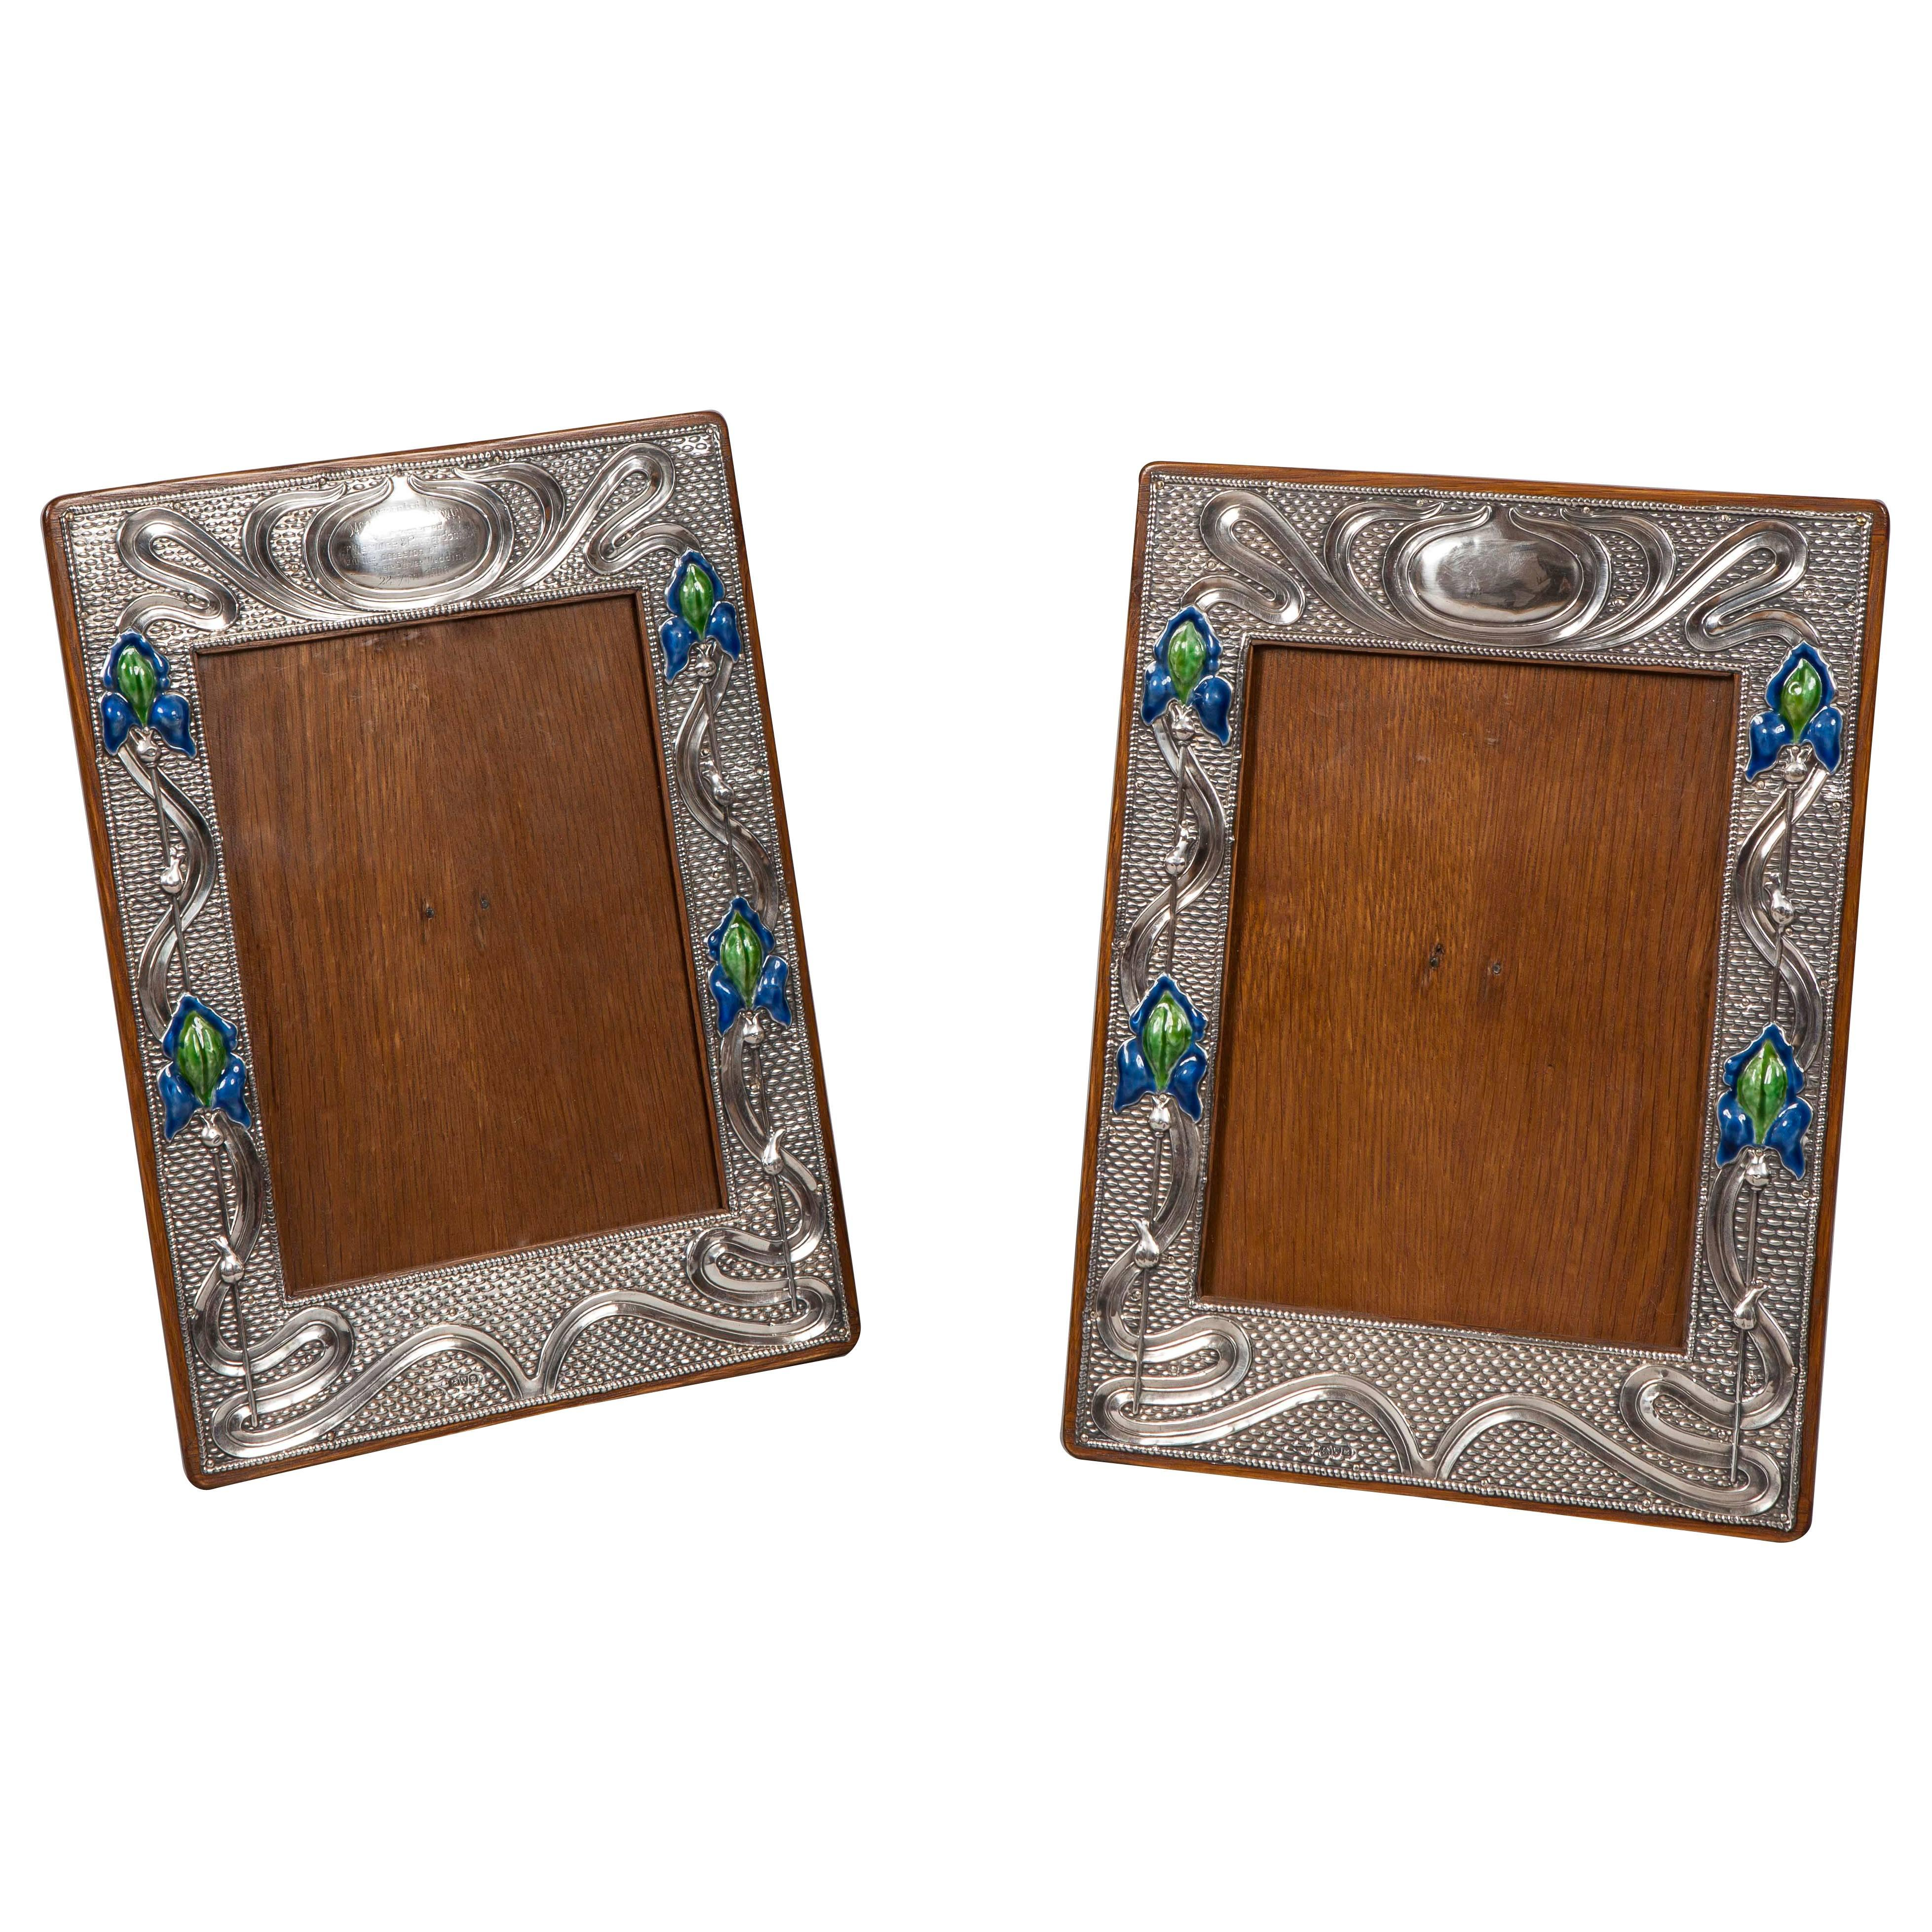 Rare early 20th century handcrafted set of moorish arabic inlaid rare early 20th century handcrafted set of moorish arabic inlaid picture frames for sale at 1stdibs jeuxipadfo Gallery